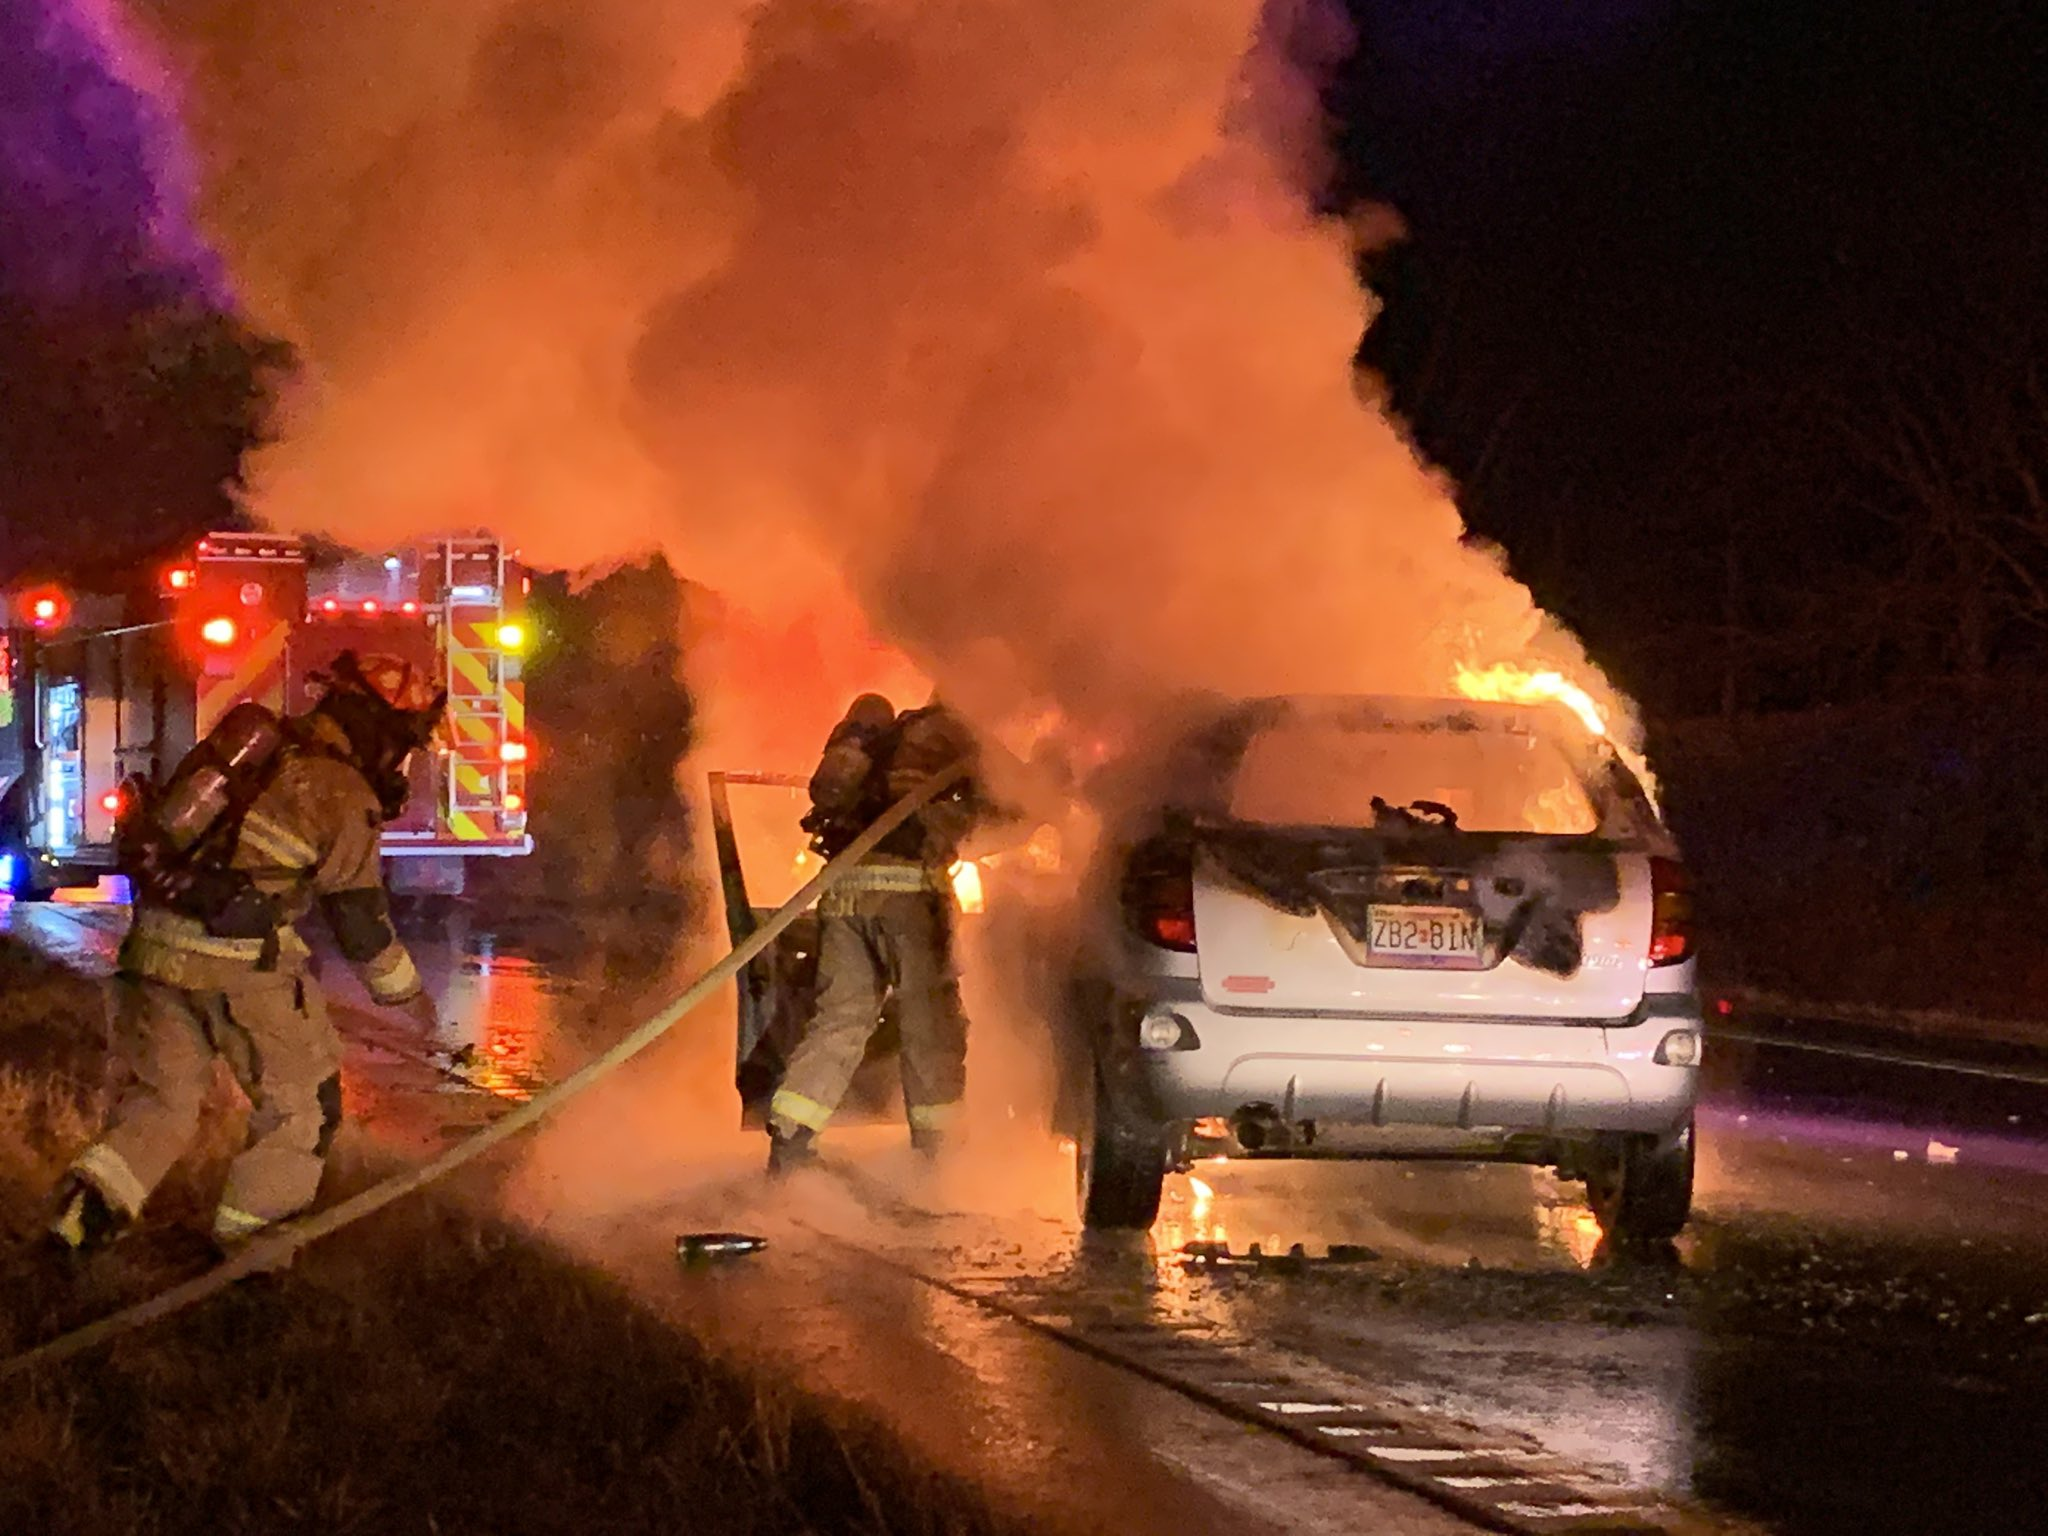 A vehicle catches fire on Highway 63 on Monday, Feb. 24, 2020.